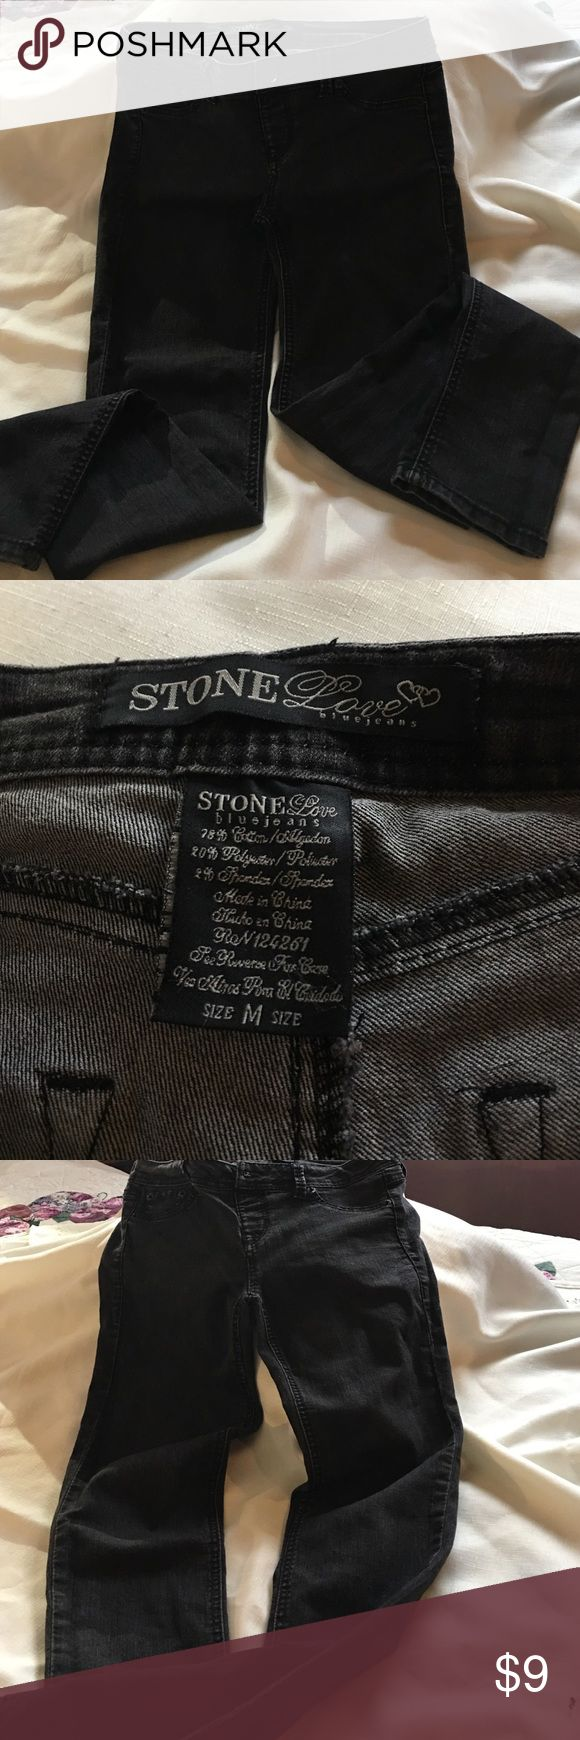 Stone Love brand  jeans cotton polyester spandex Stone Love jeans Medium size. Juniors straight leg style stretch fabric in gray Stone Love Jeans Ankle & Cropped